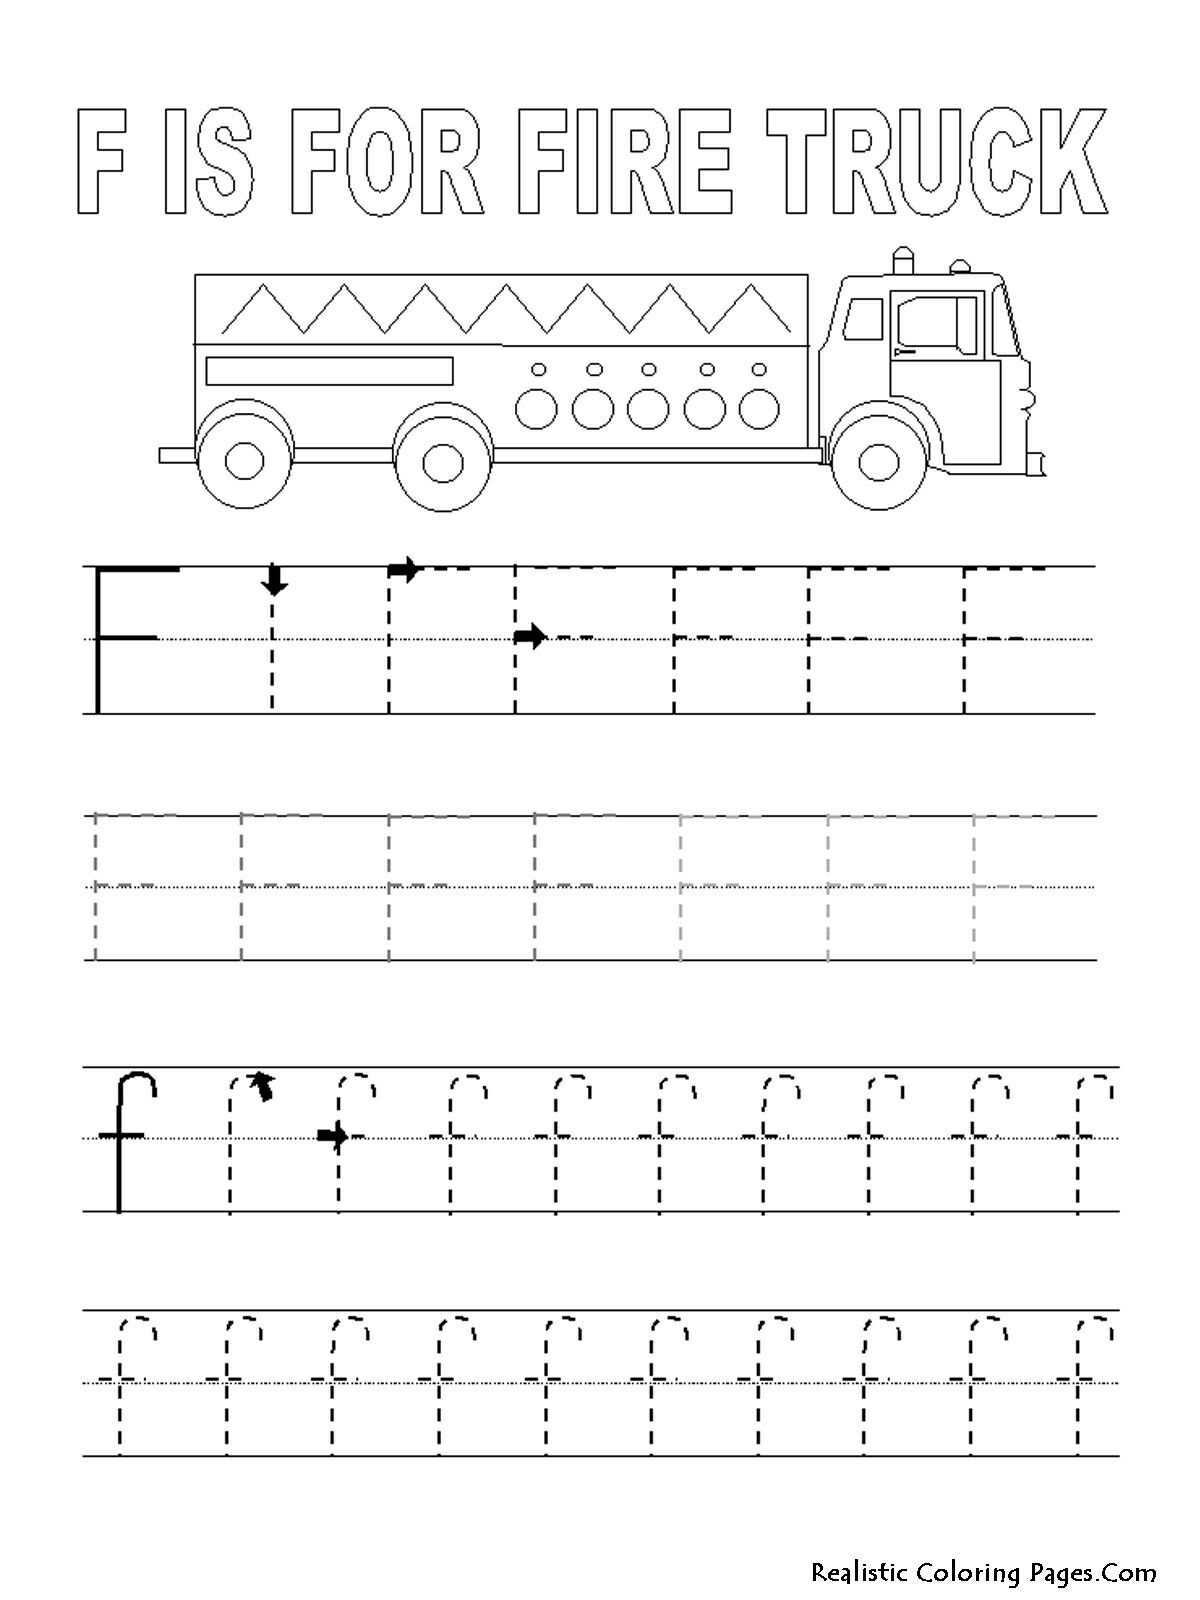 Pin By Cindy Cyriaque On Crafts Alphabet Tracing Printables Alphabet Tracing Worksheets Printable Alphabet Worksheets